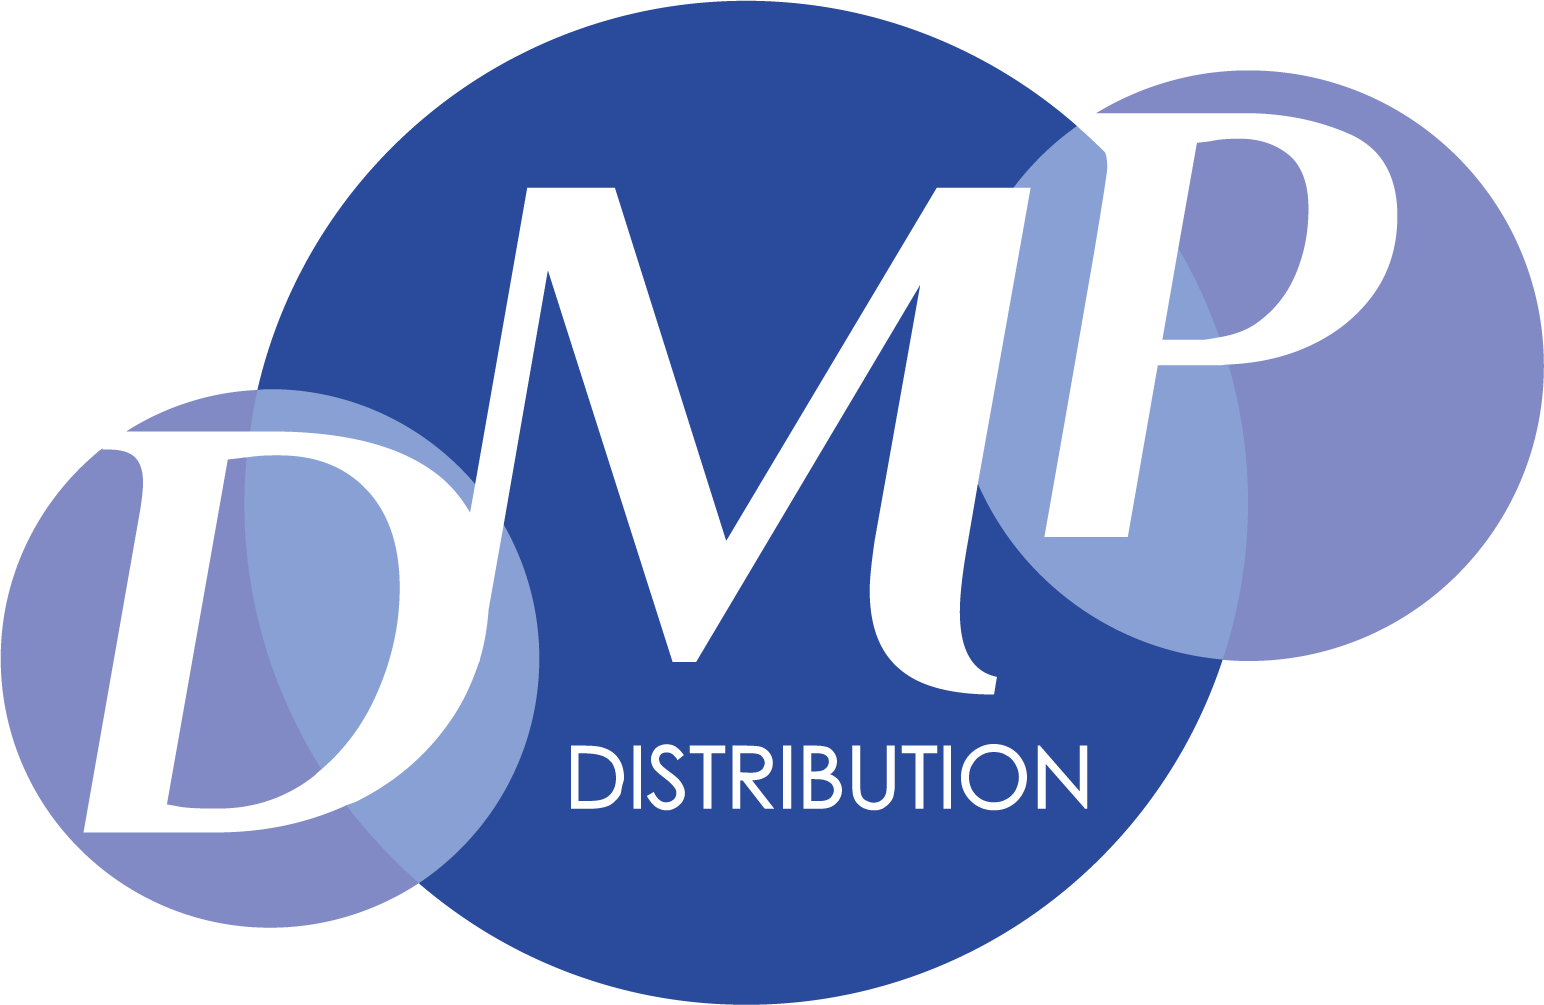 DMP Distribution